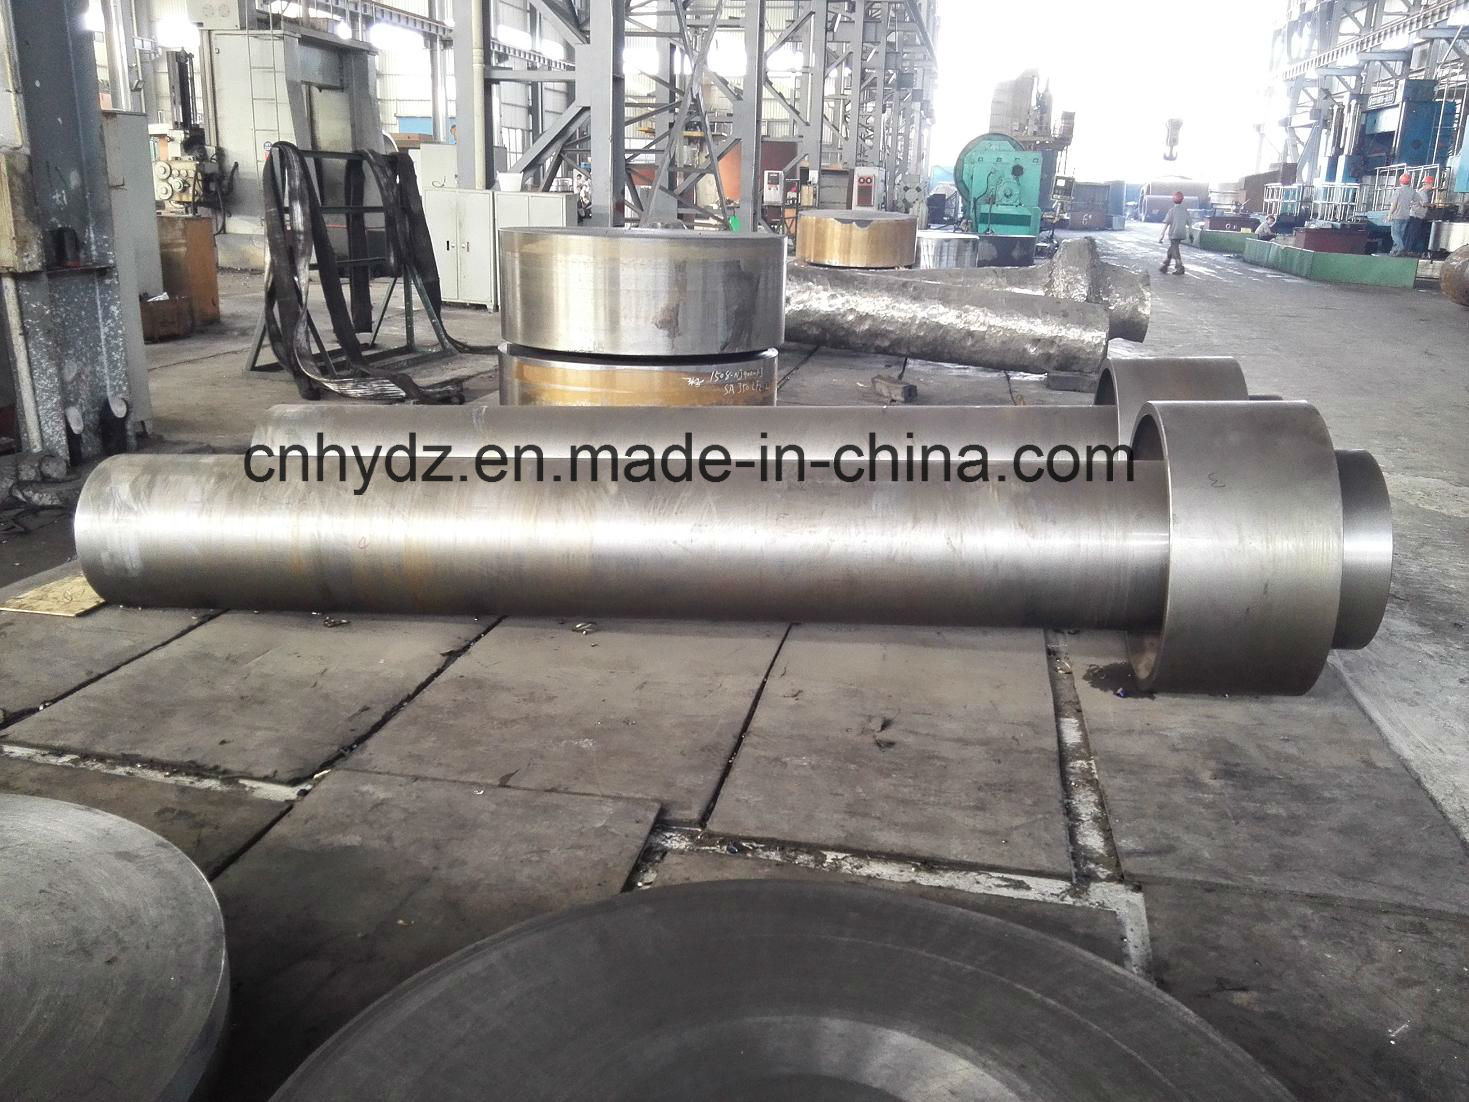 Hot Forged Shaft of Material 1.4662 (X2CrNiMoN22-5-3) Duplex Stainless Steel